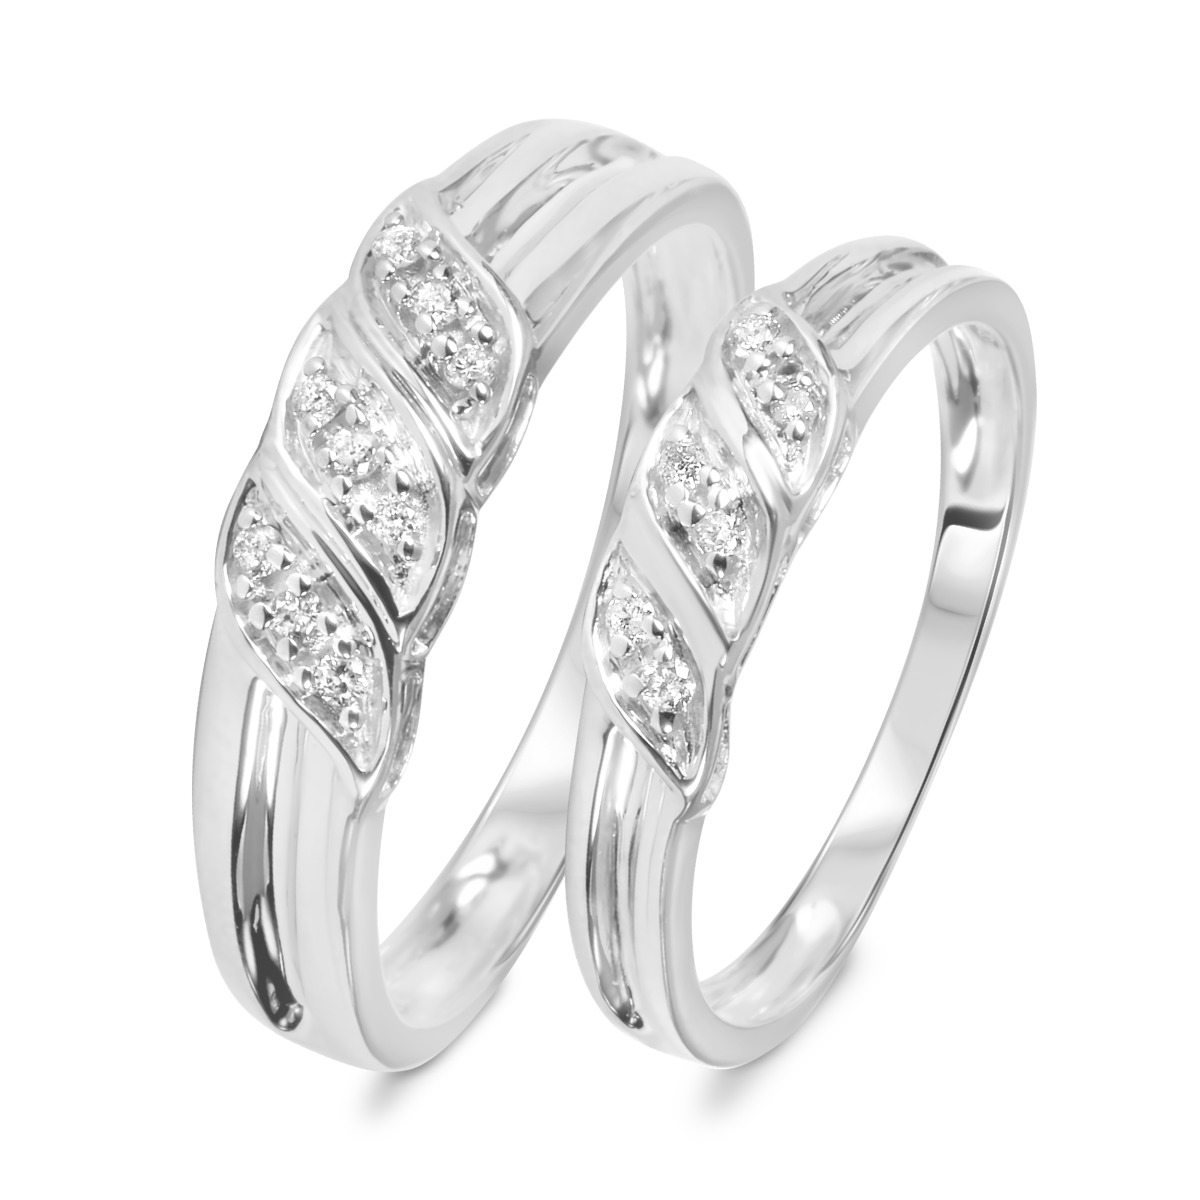 1/7 Carat T.W. Diamond Ladies' and Men's Wedding Rings 10K White Gold